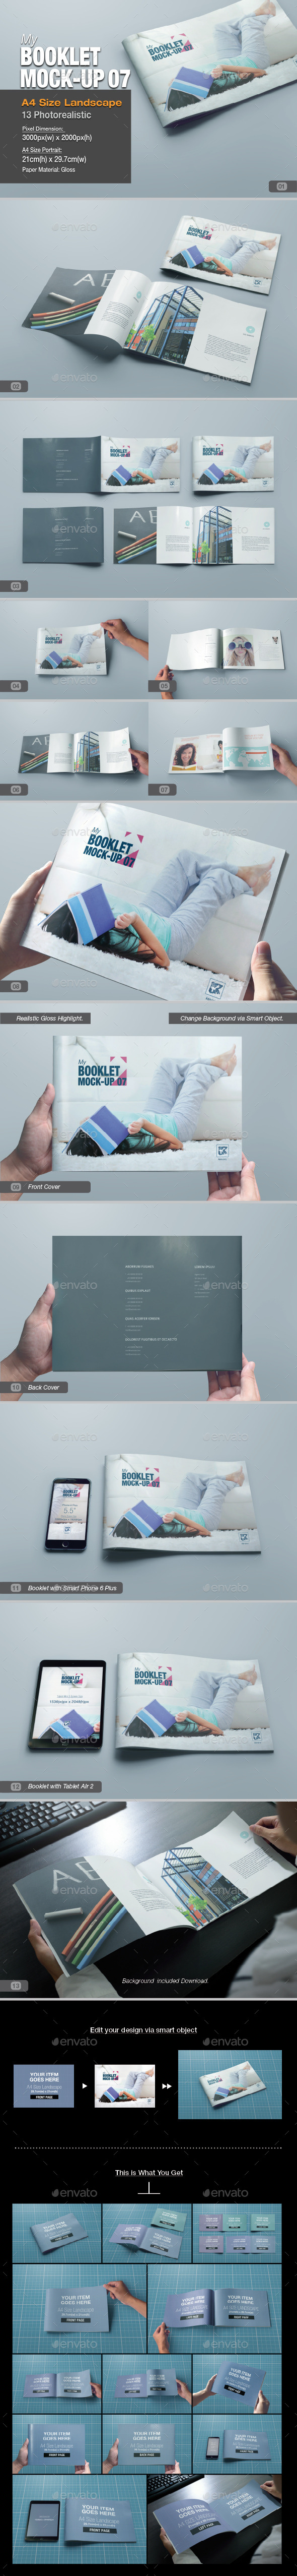 GraphicRiver myBooklet Mock-up 07 10863229